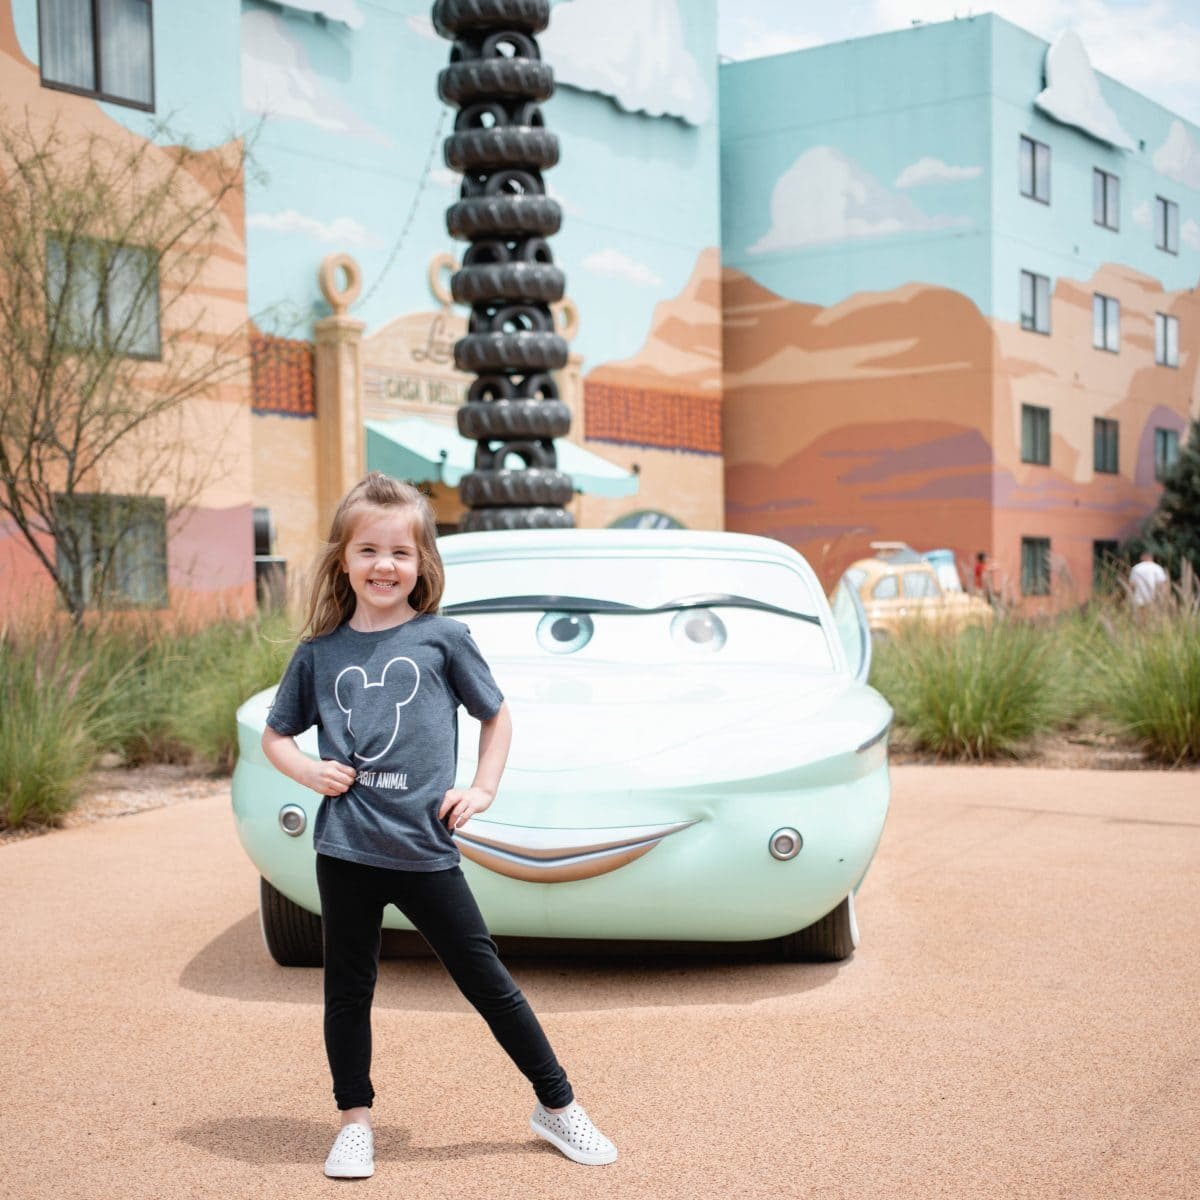 Art of Animation Resort in Walt Disney World - best hotel for preschoolers and beyond